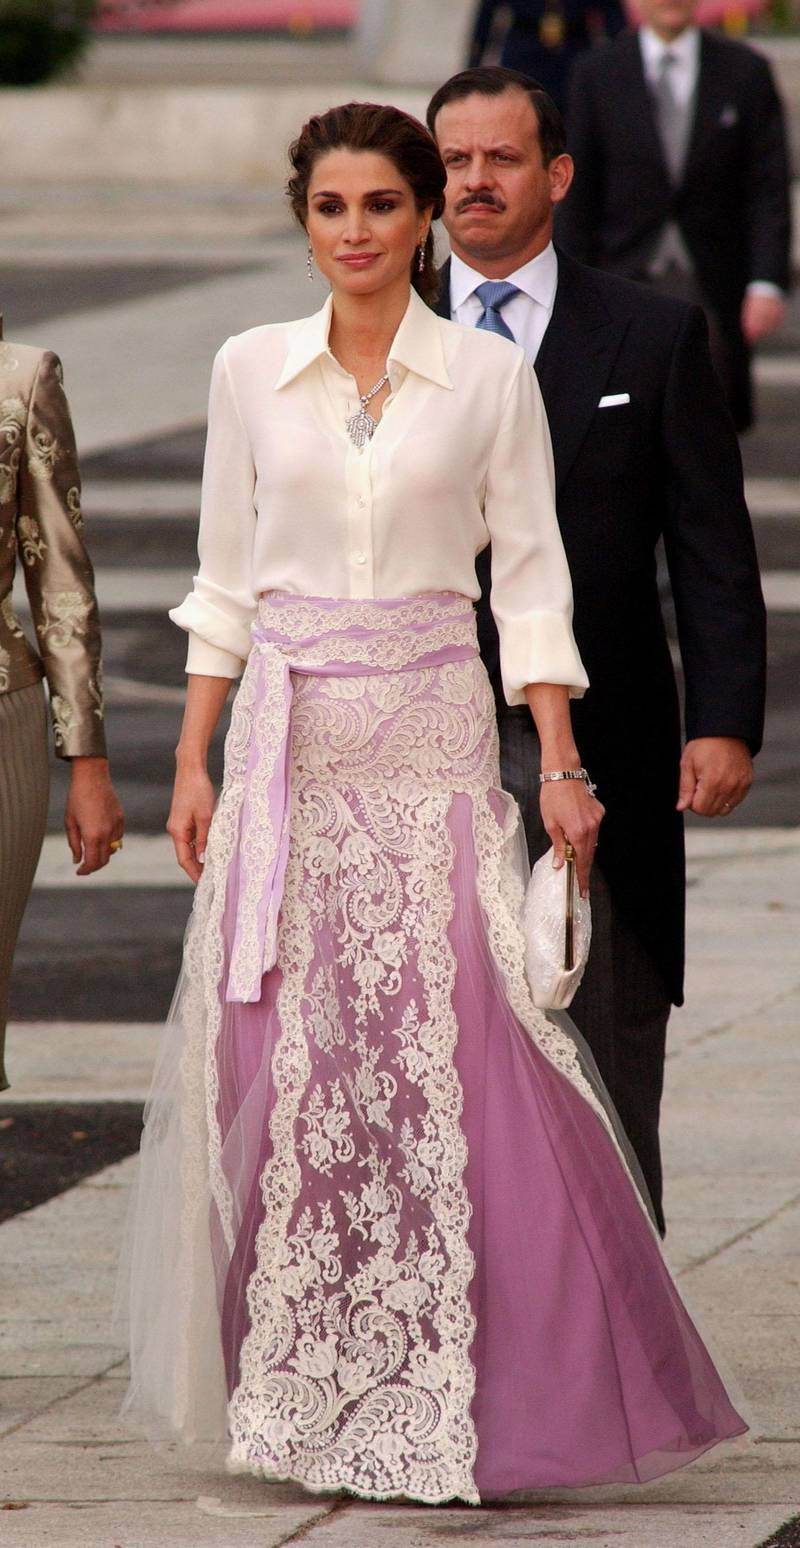 MADRID, SPAIN - MAY 22: Jordan's Queen Rania arrives to attend the wedding between Spanish Crown Prince Felipe de Bourbon and former journalist Letizia Ortiz at the Almudena cathedral May 22, 2004 in Madrid.  (Photo Getty Images)